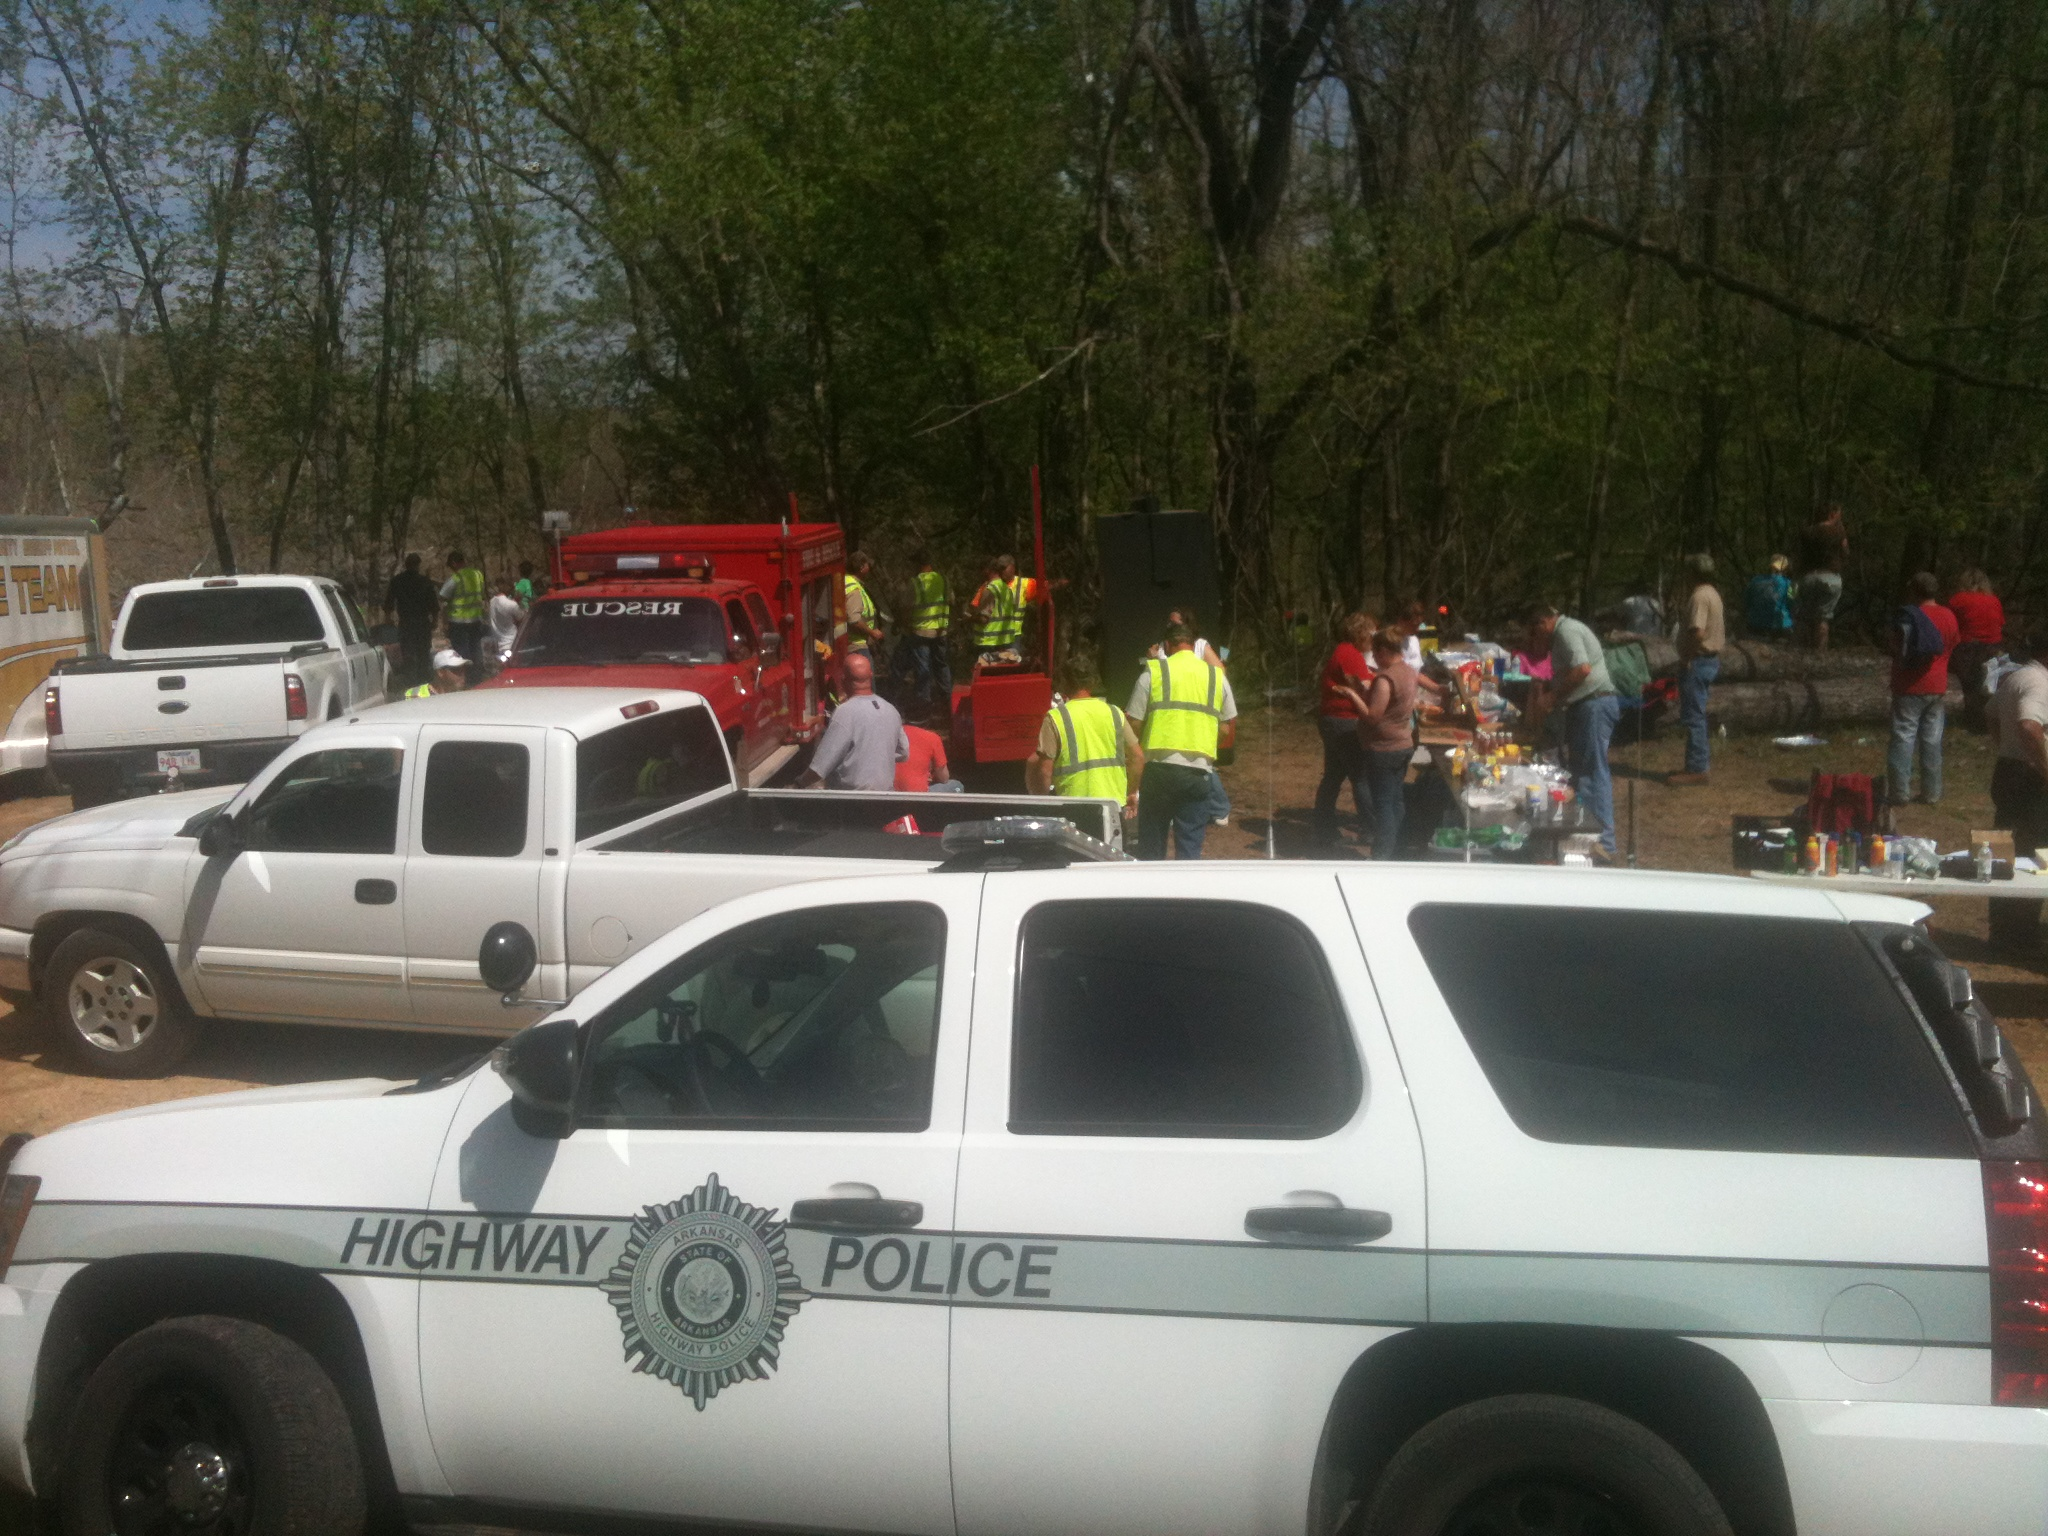 Sheriff's officials from several counties joined the search